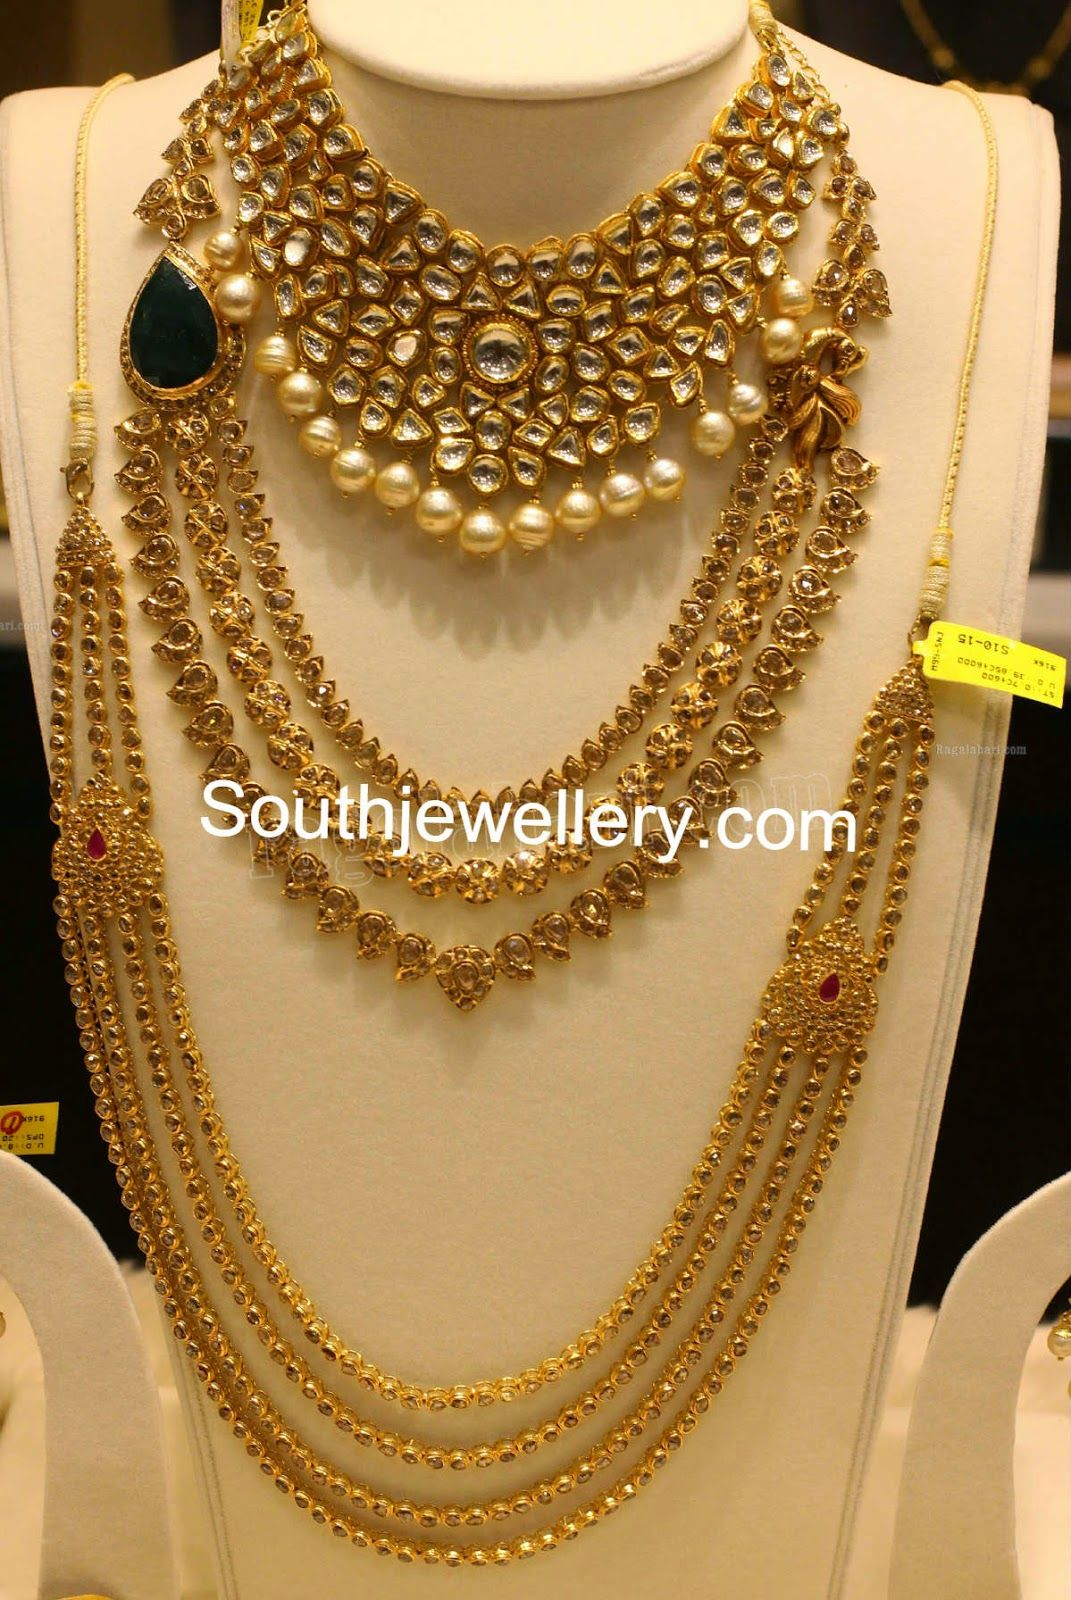 22 carat gold floral designer pendant with multiple beads chain and - Malabar Gold And Diamonds Google Search